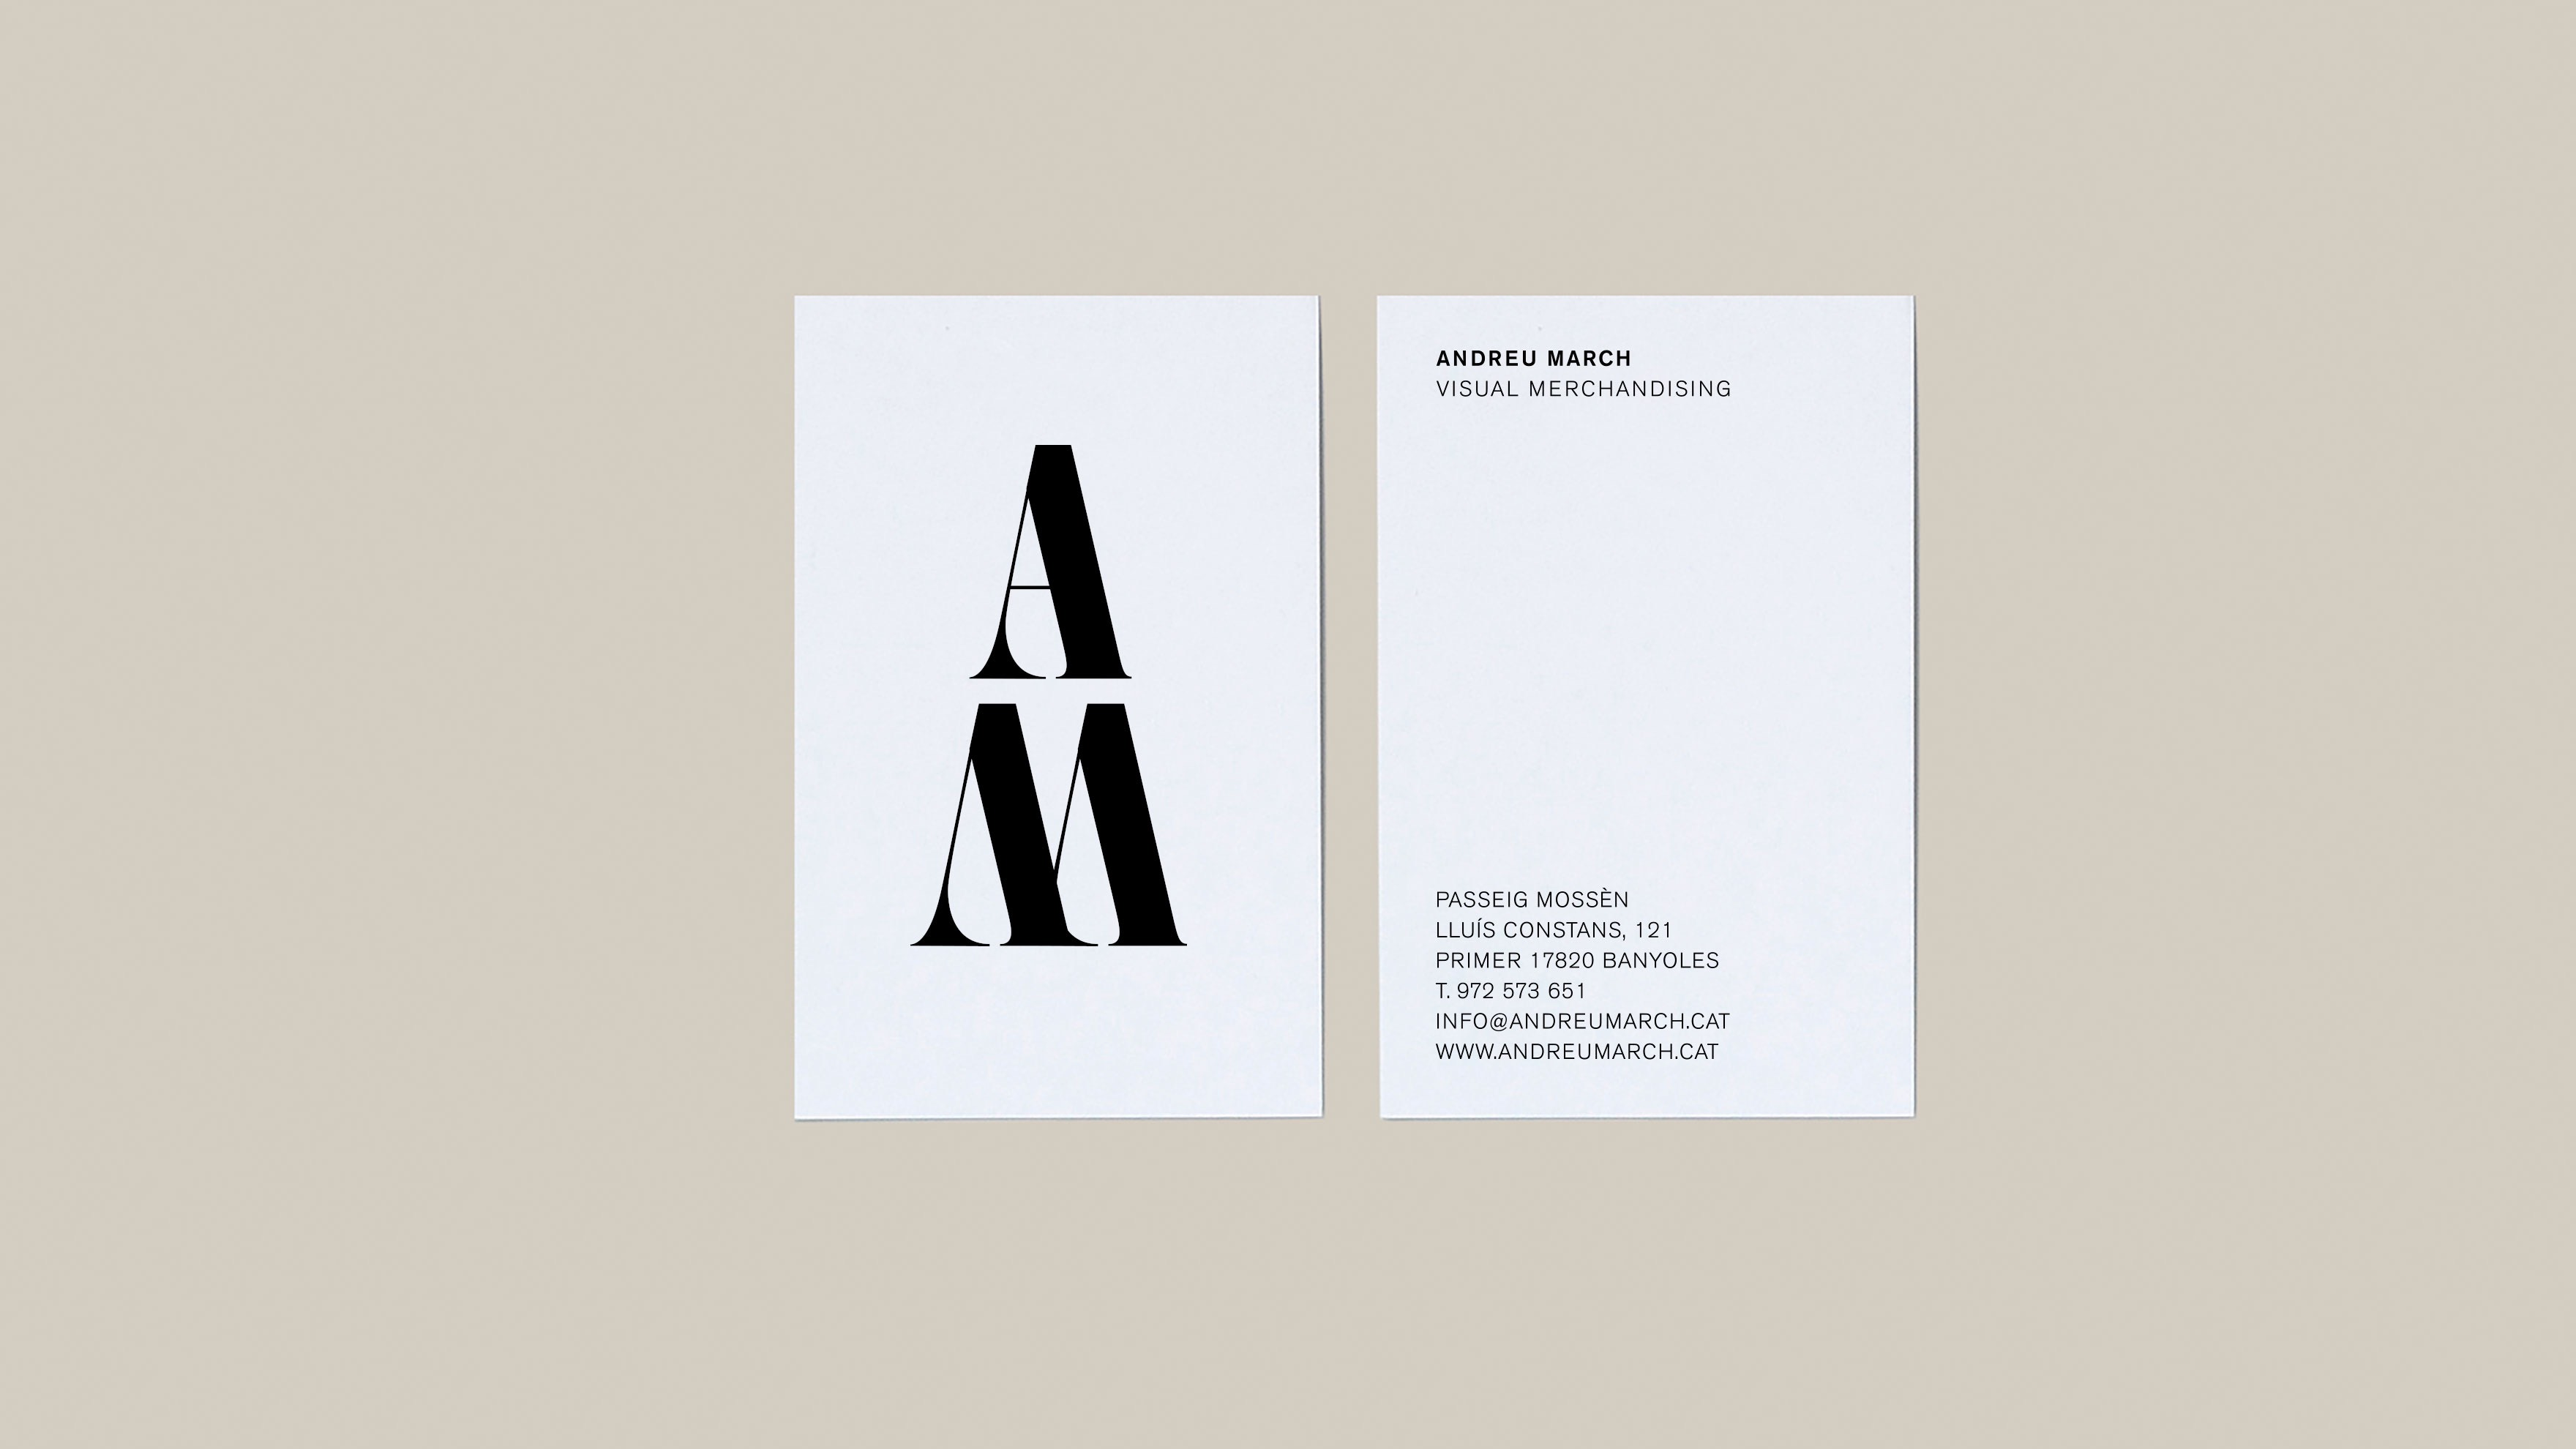 ANDREU MARCH / CORPORATE IDENTITY / BRANDING